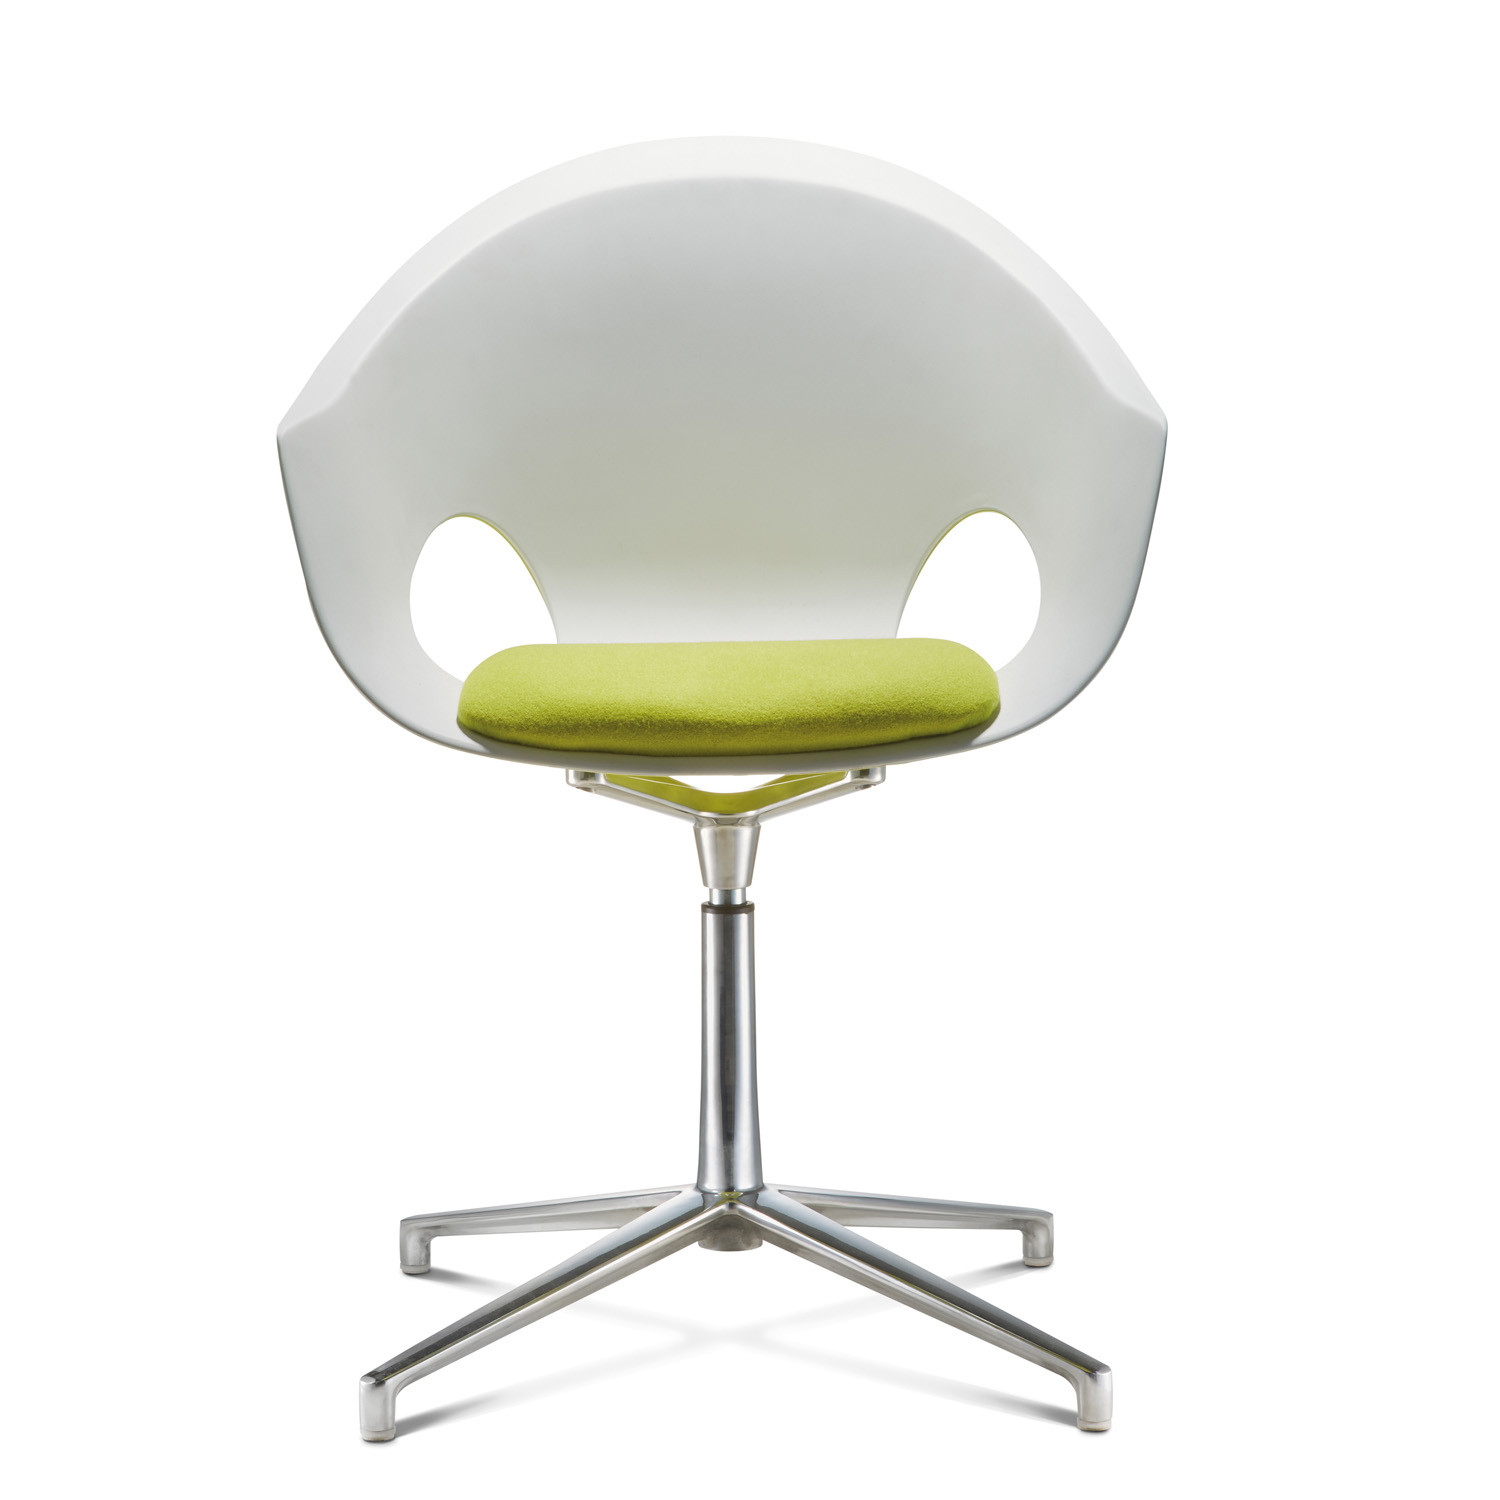 Paul Brooks Zest Chair with seat cushion